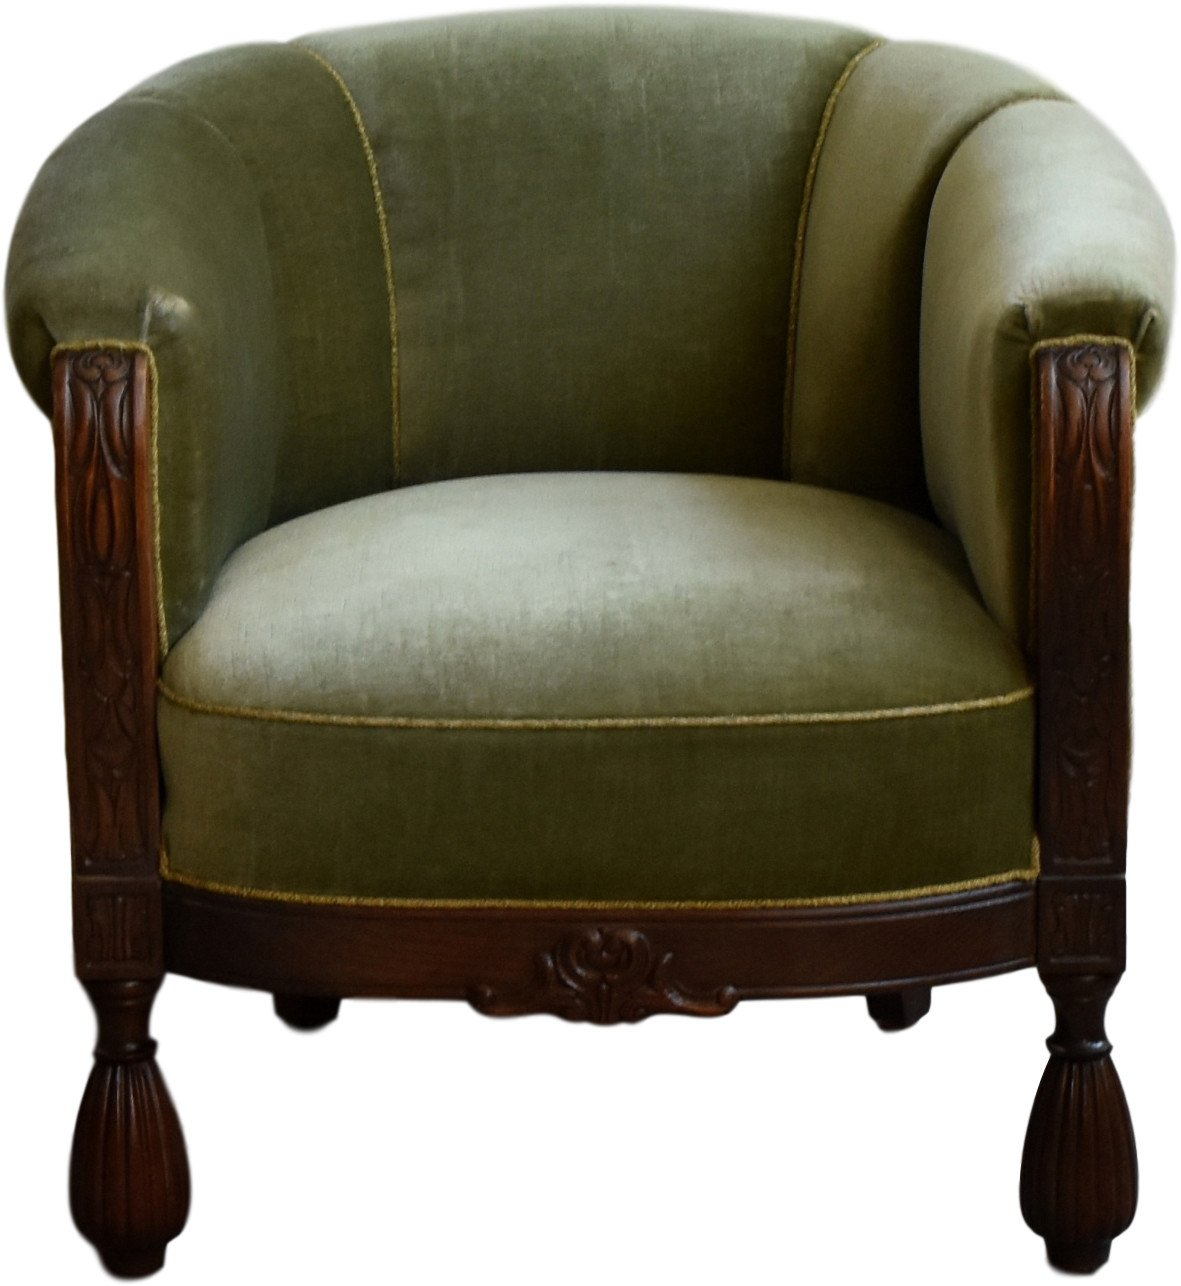 Armchair, early 20th C.